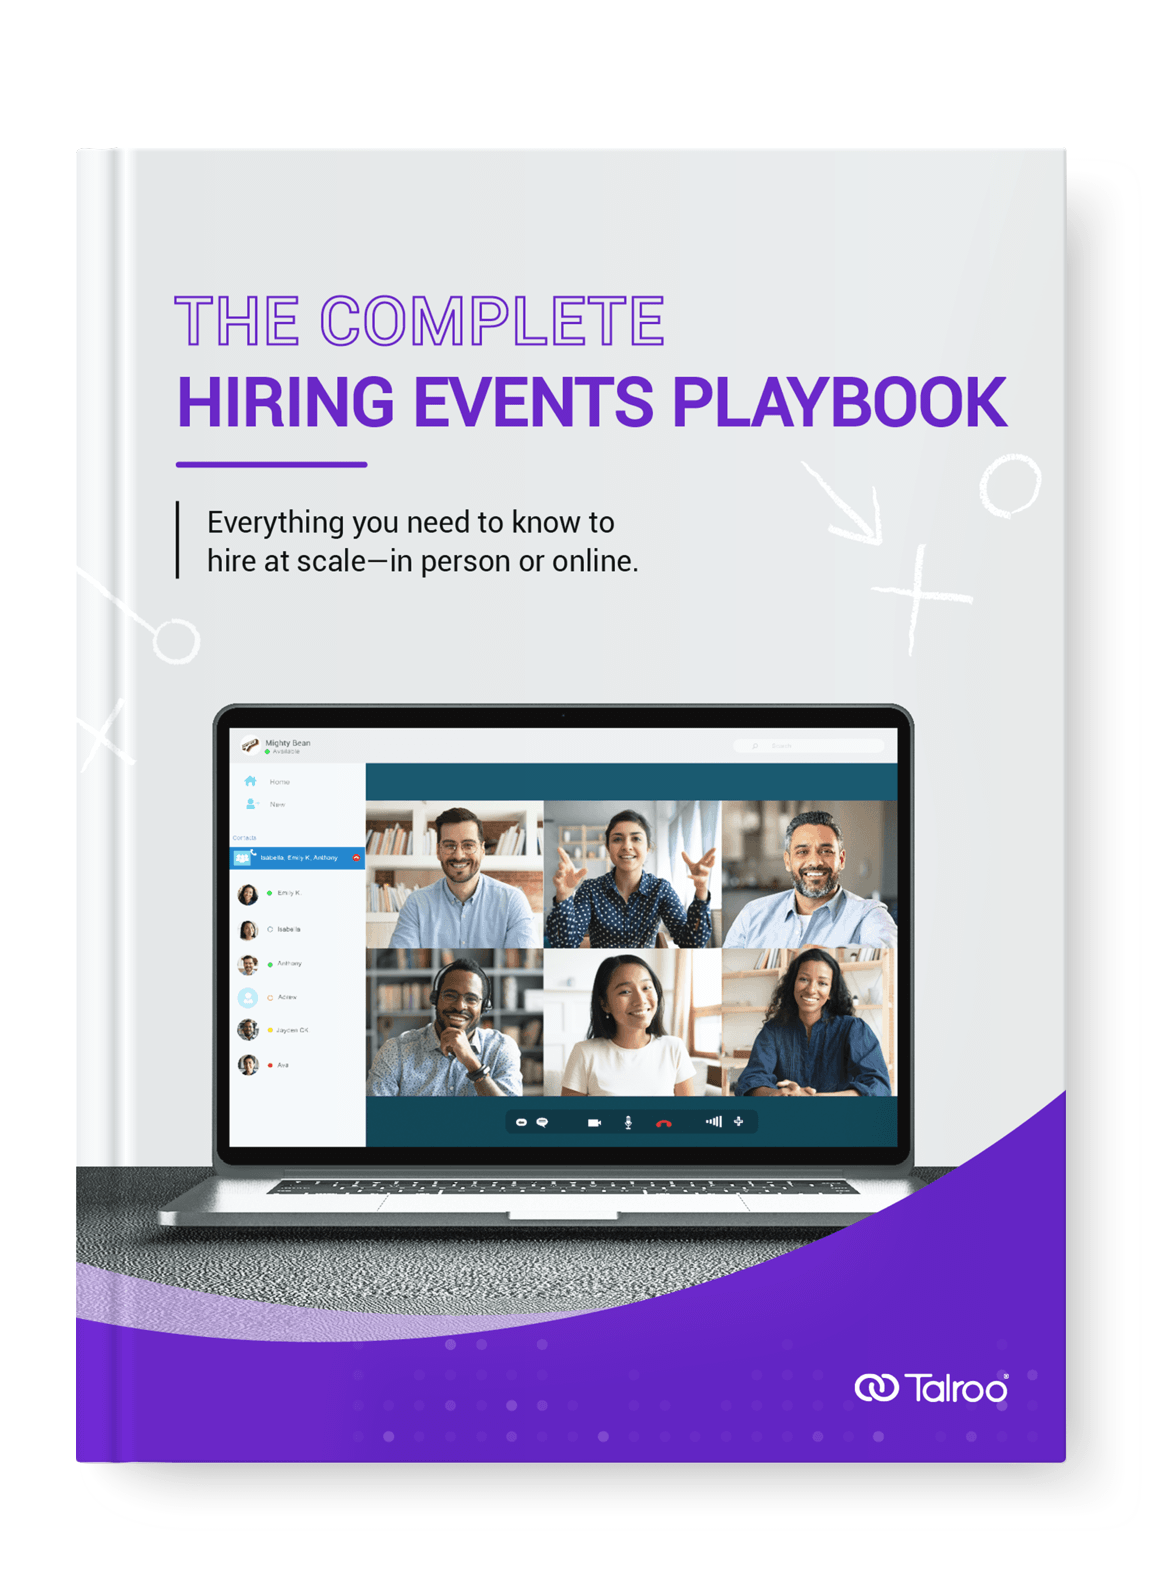 Talroo Complete Hiring Events Playbook eBook.